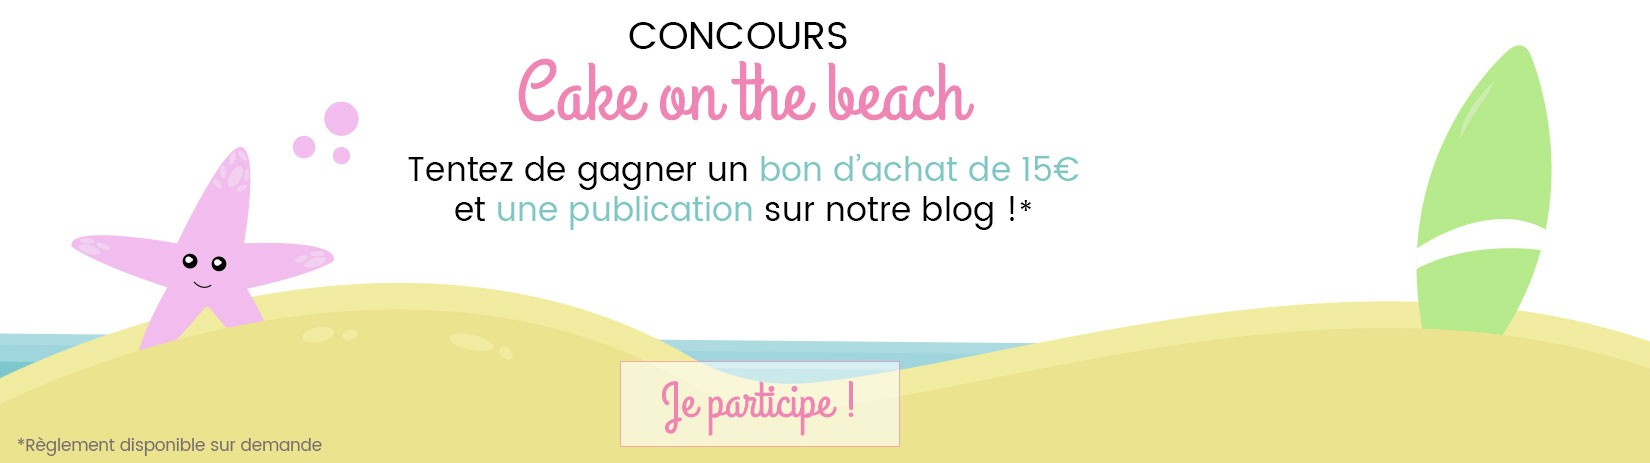 Concours Cake on the beach